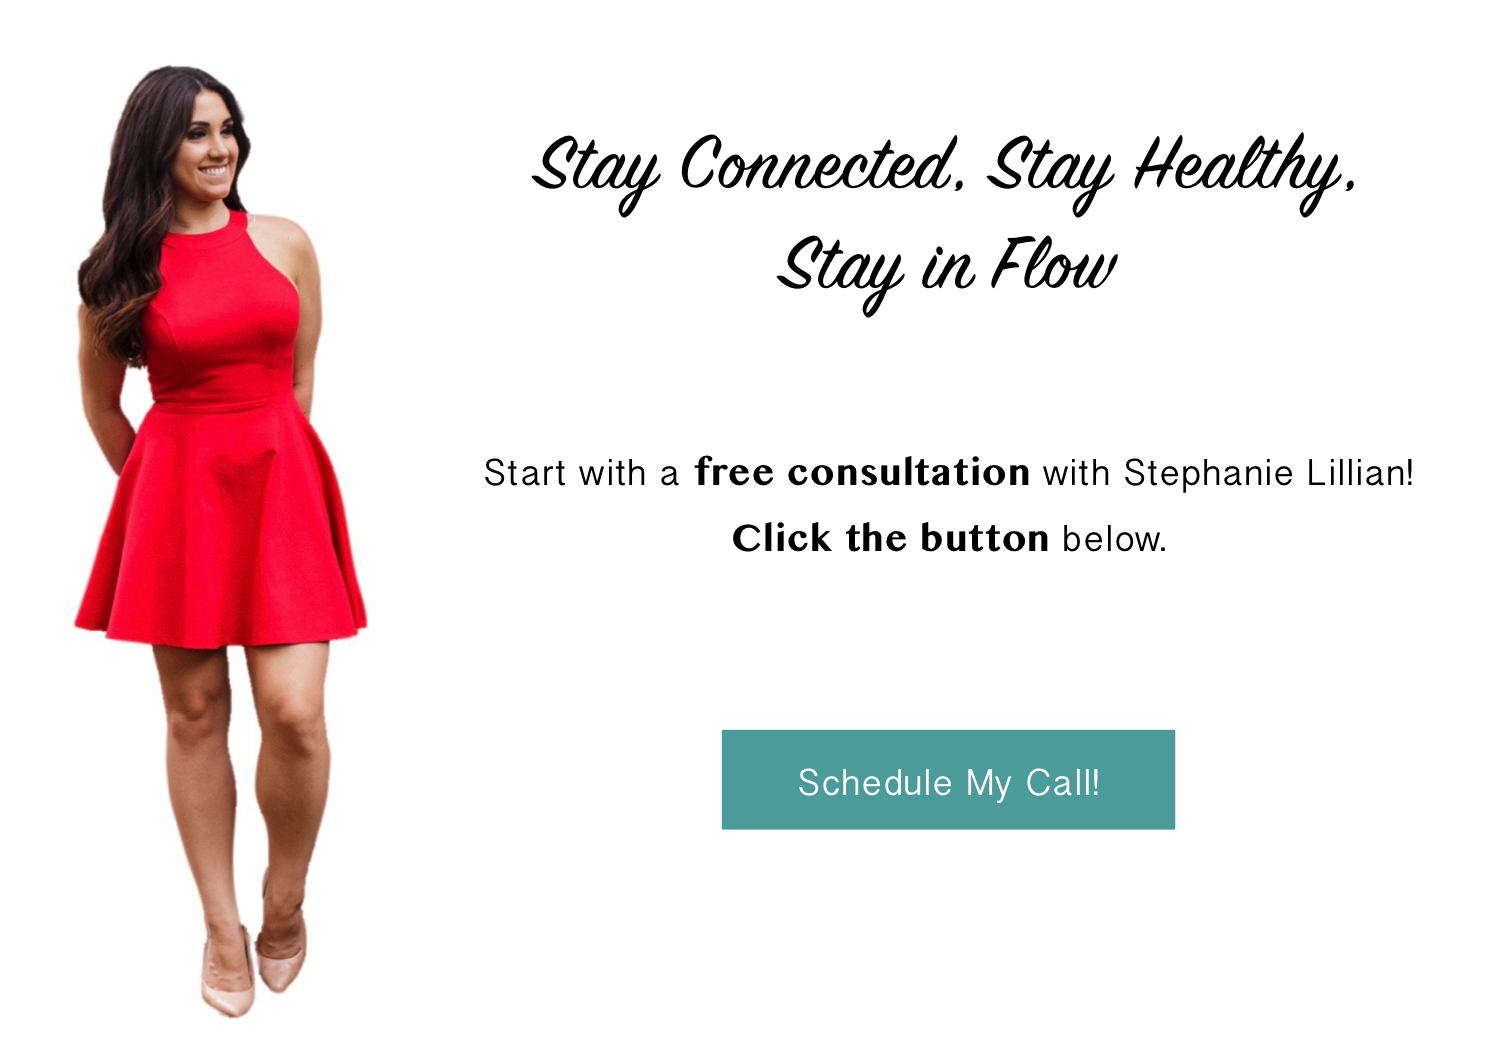 Stay in Flow Consultation